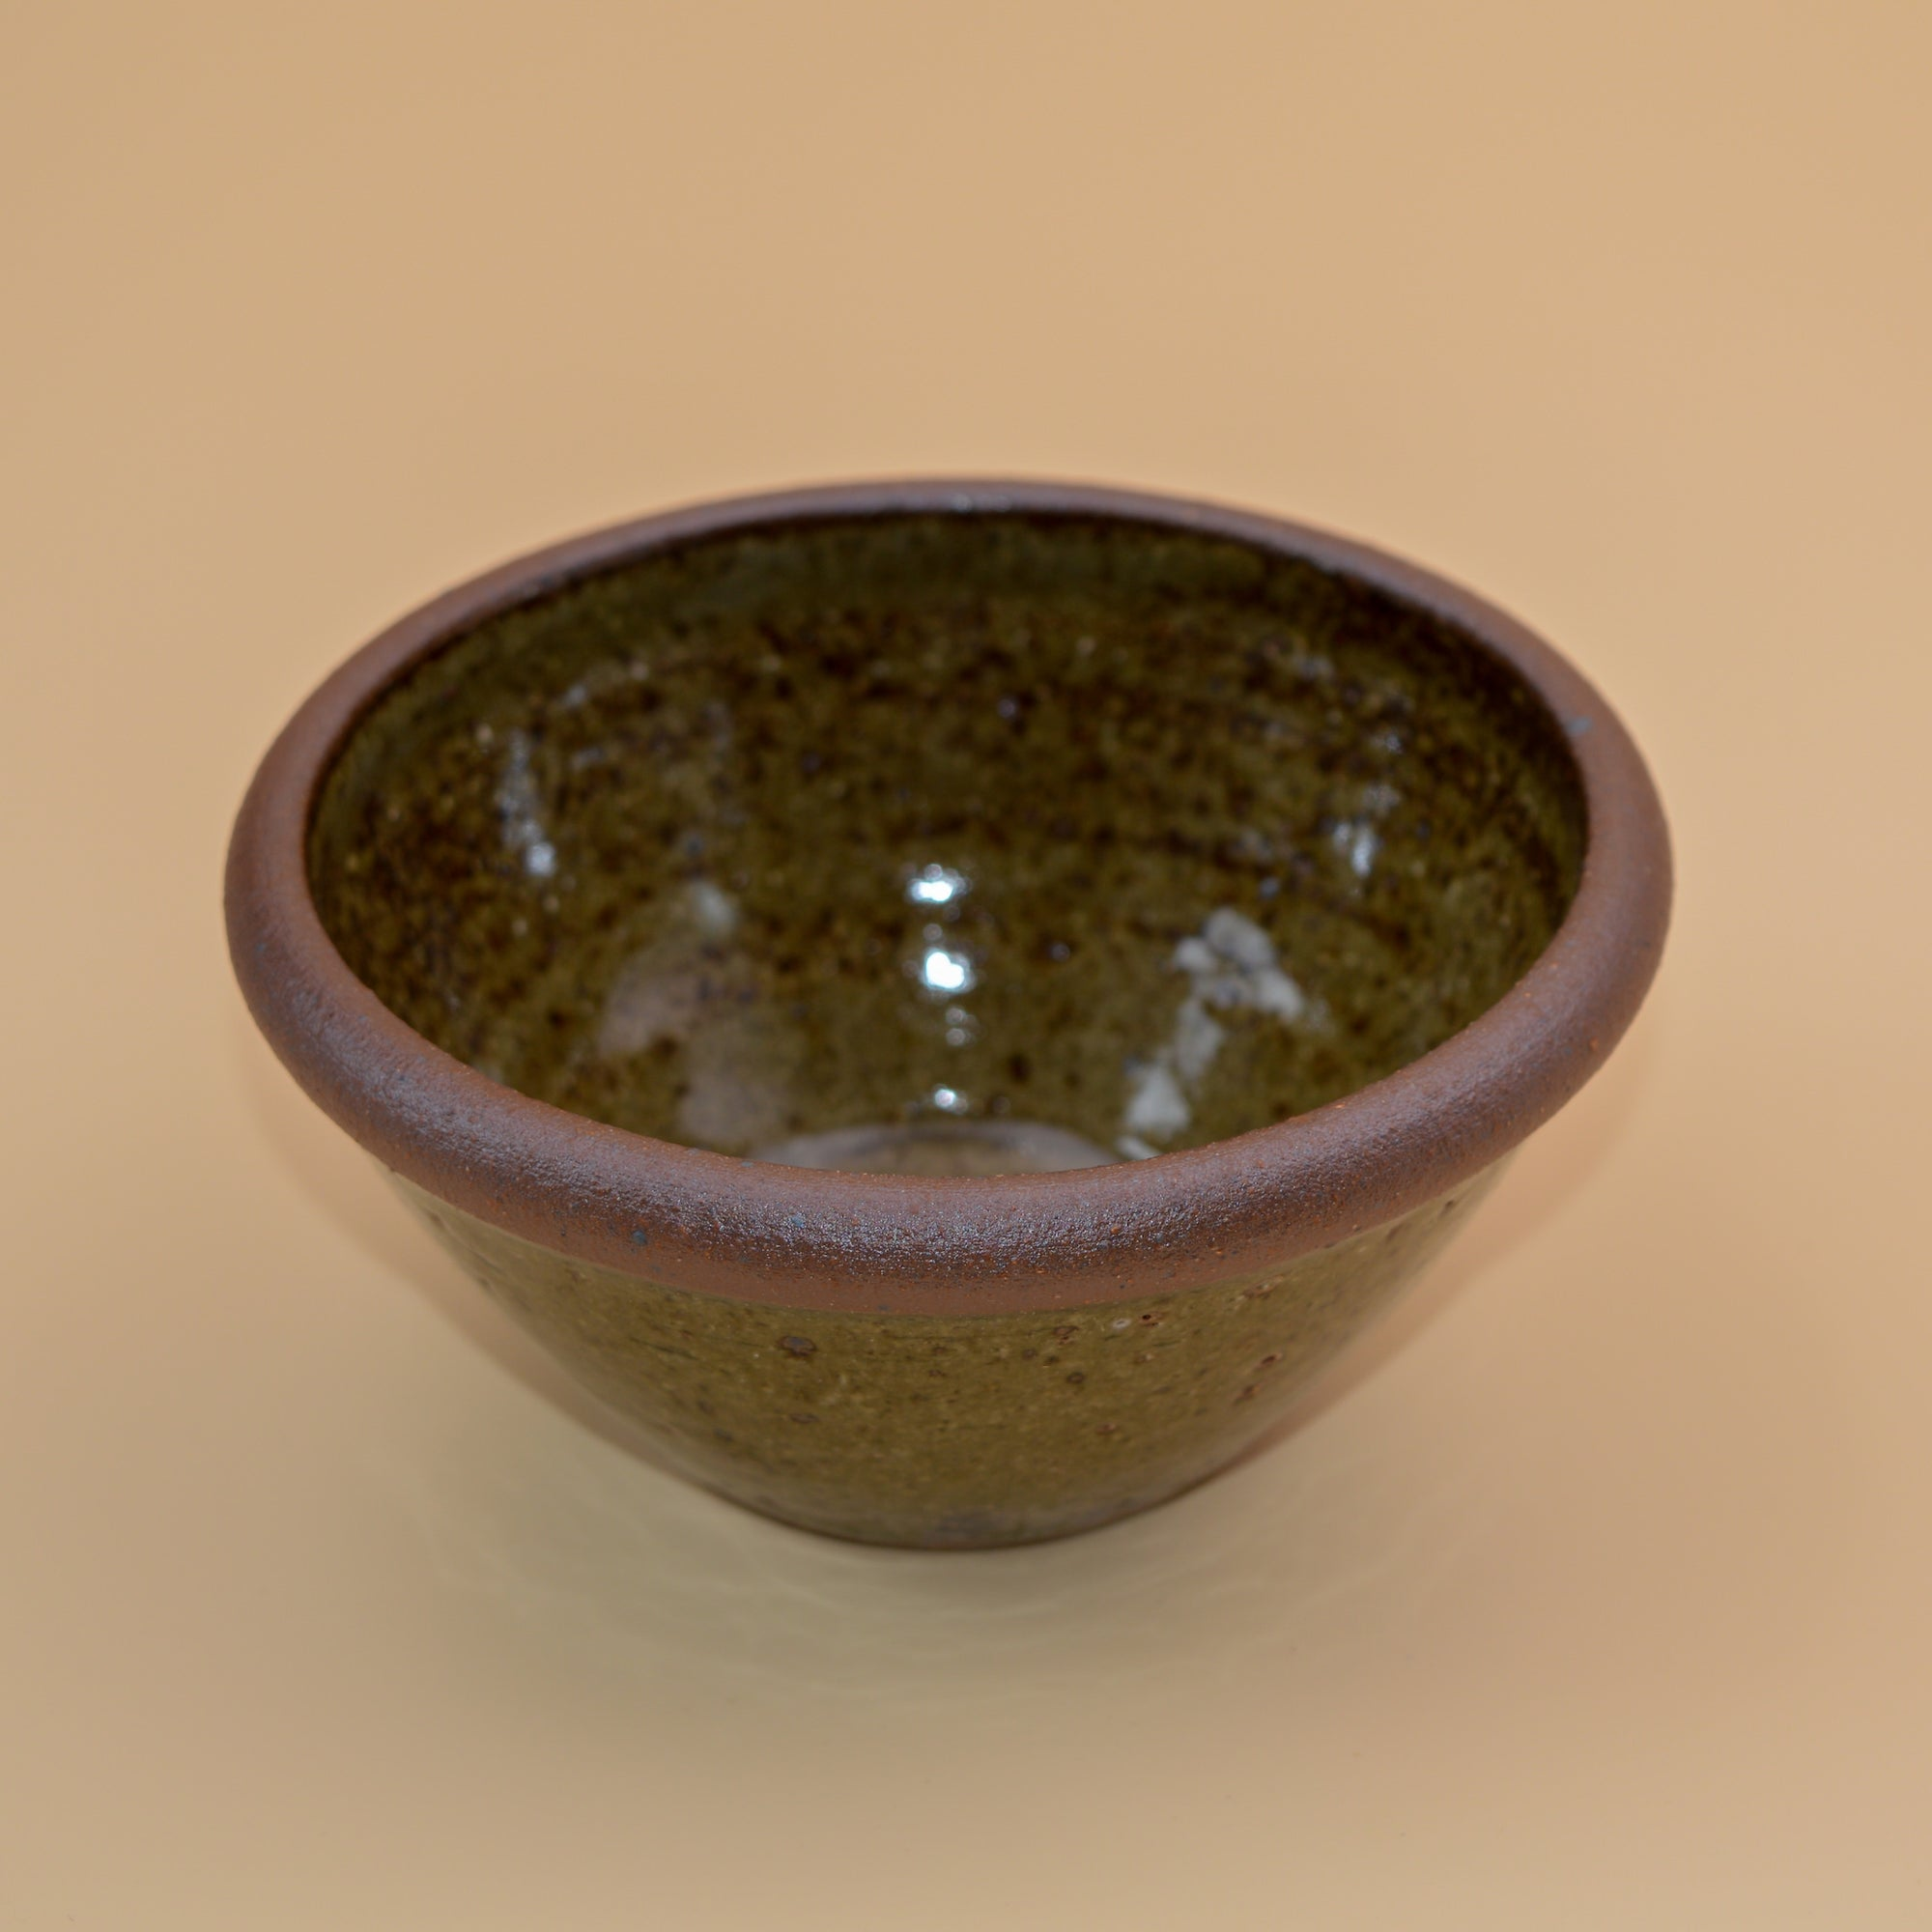 Leach Pottery Small Bowl